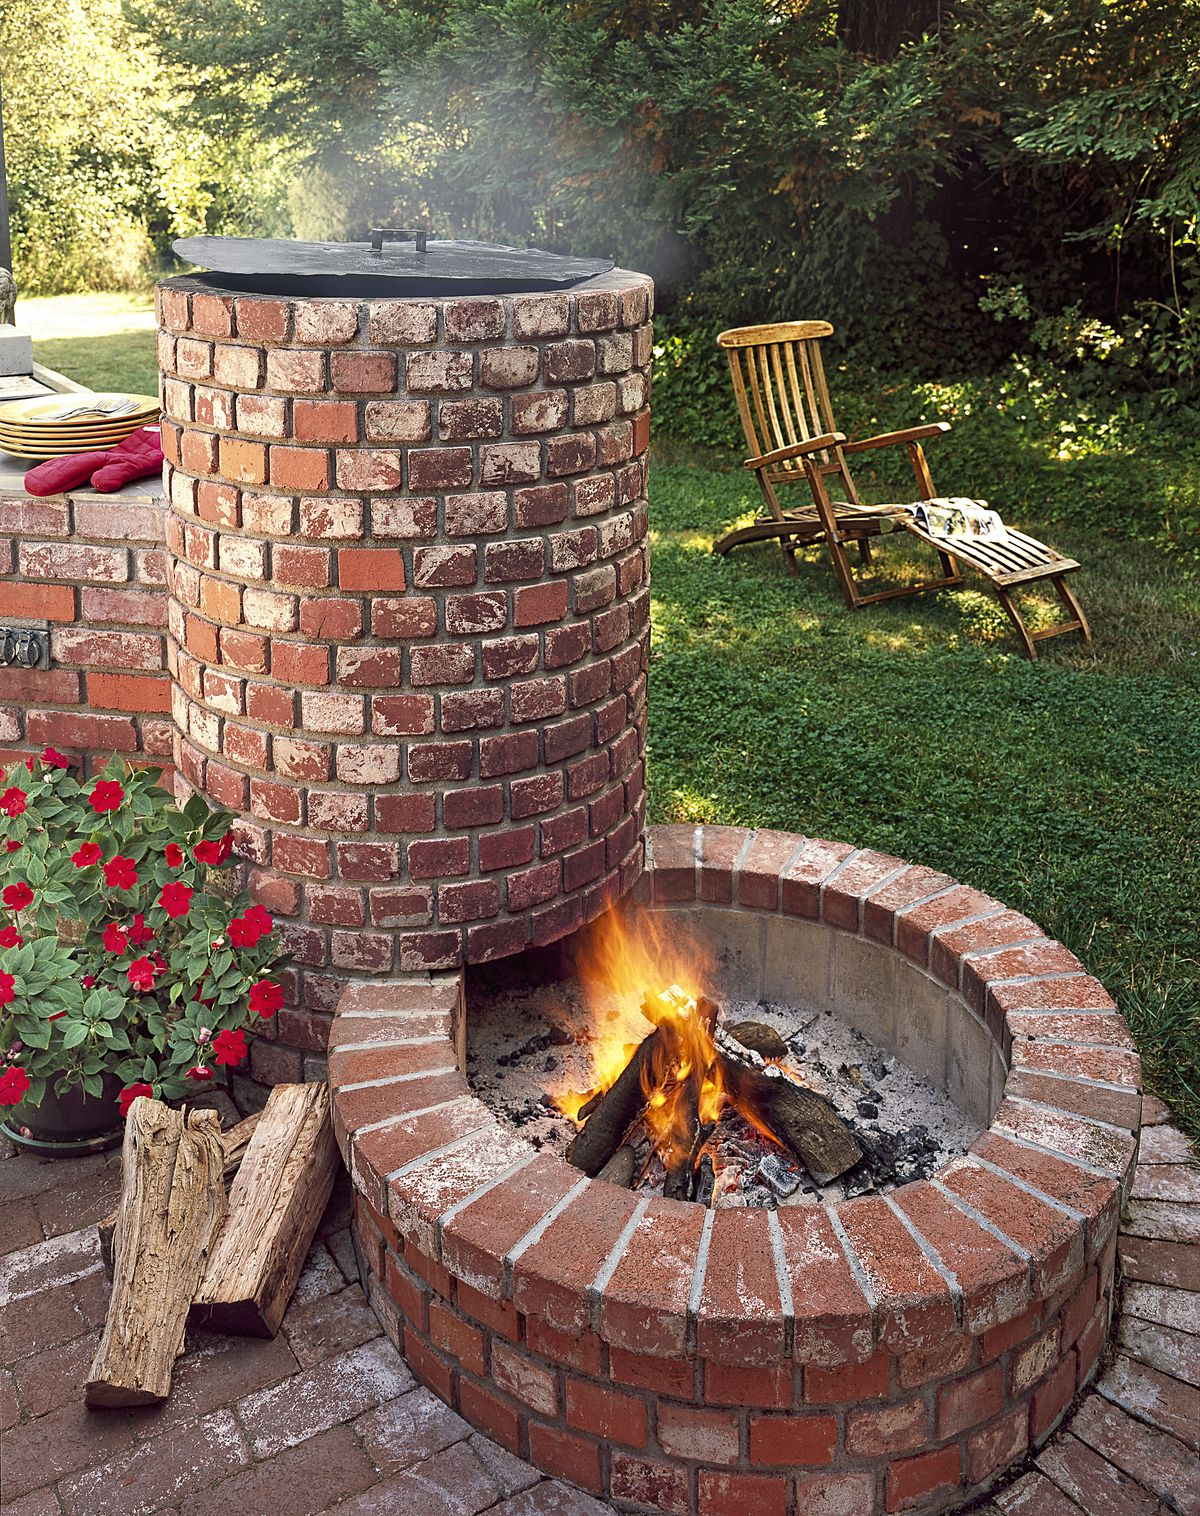 All About Built-in Barbecue Pits - This Old House